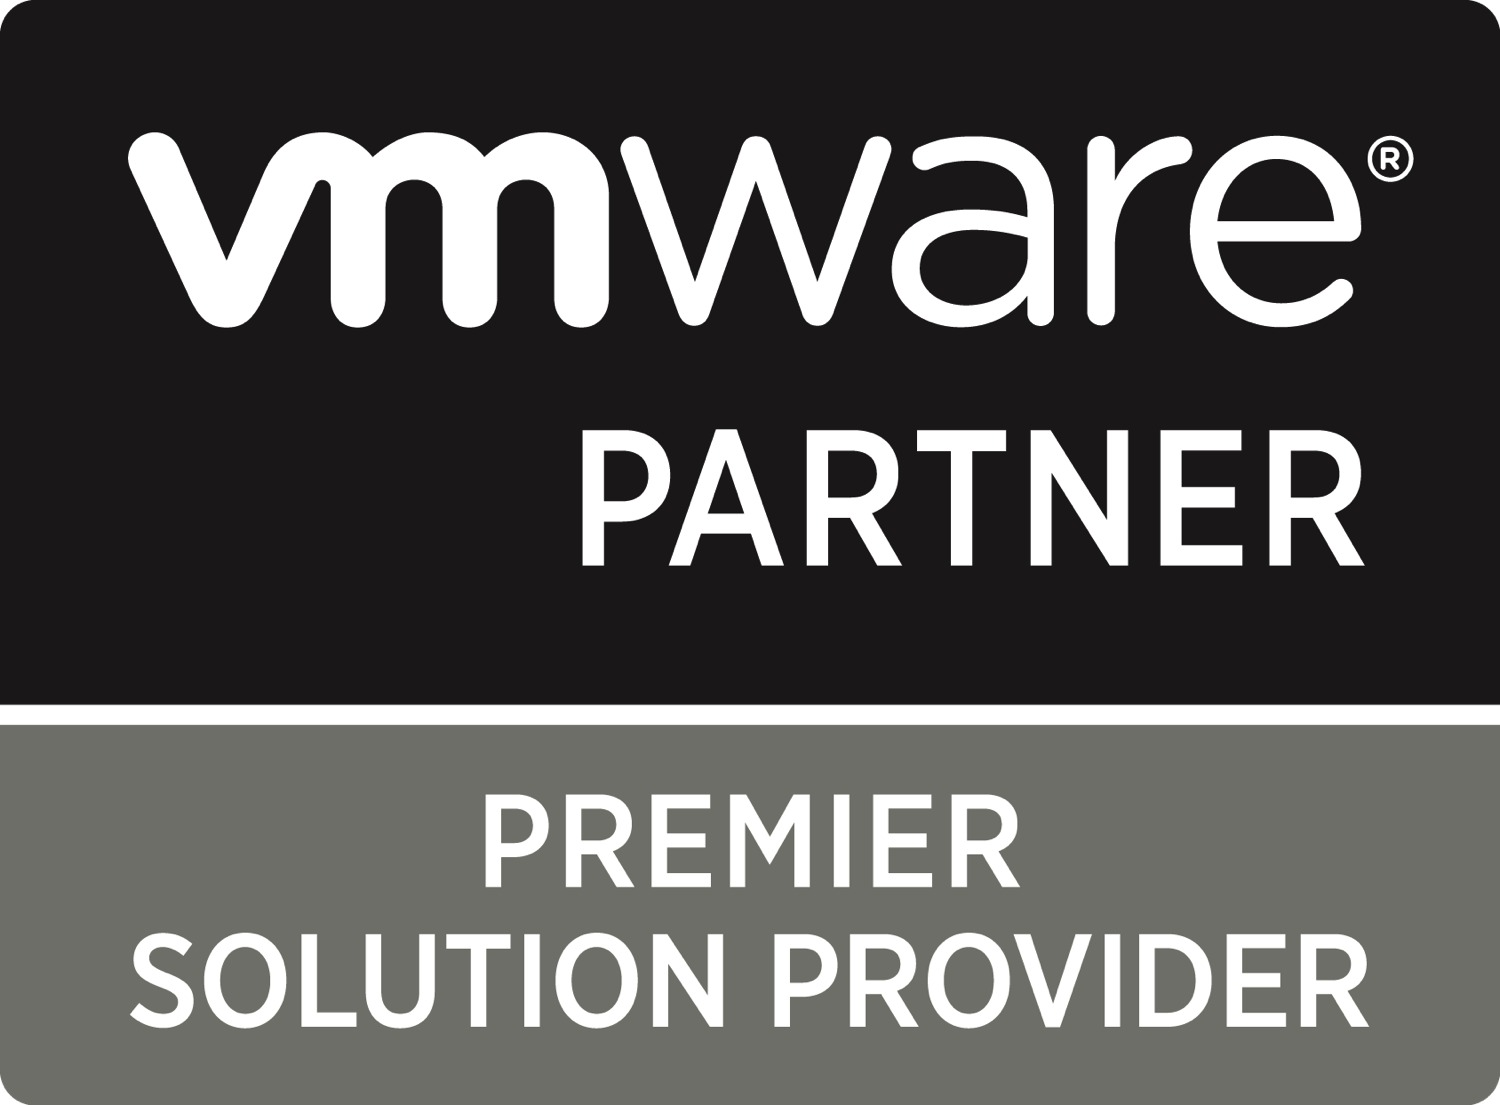 vmware-premier-solution-provider-logo-01-Resized-1